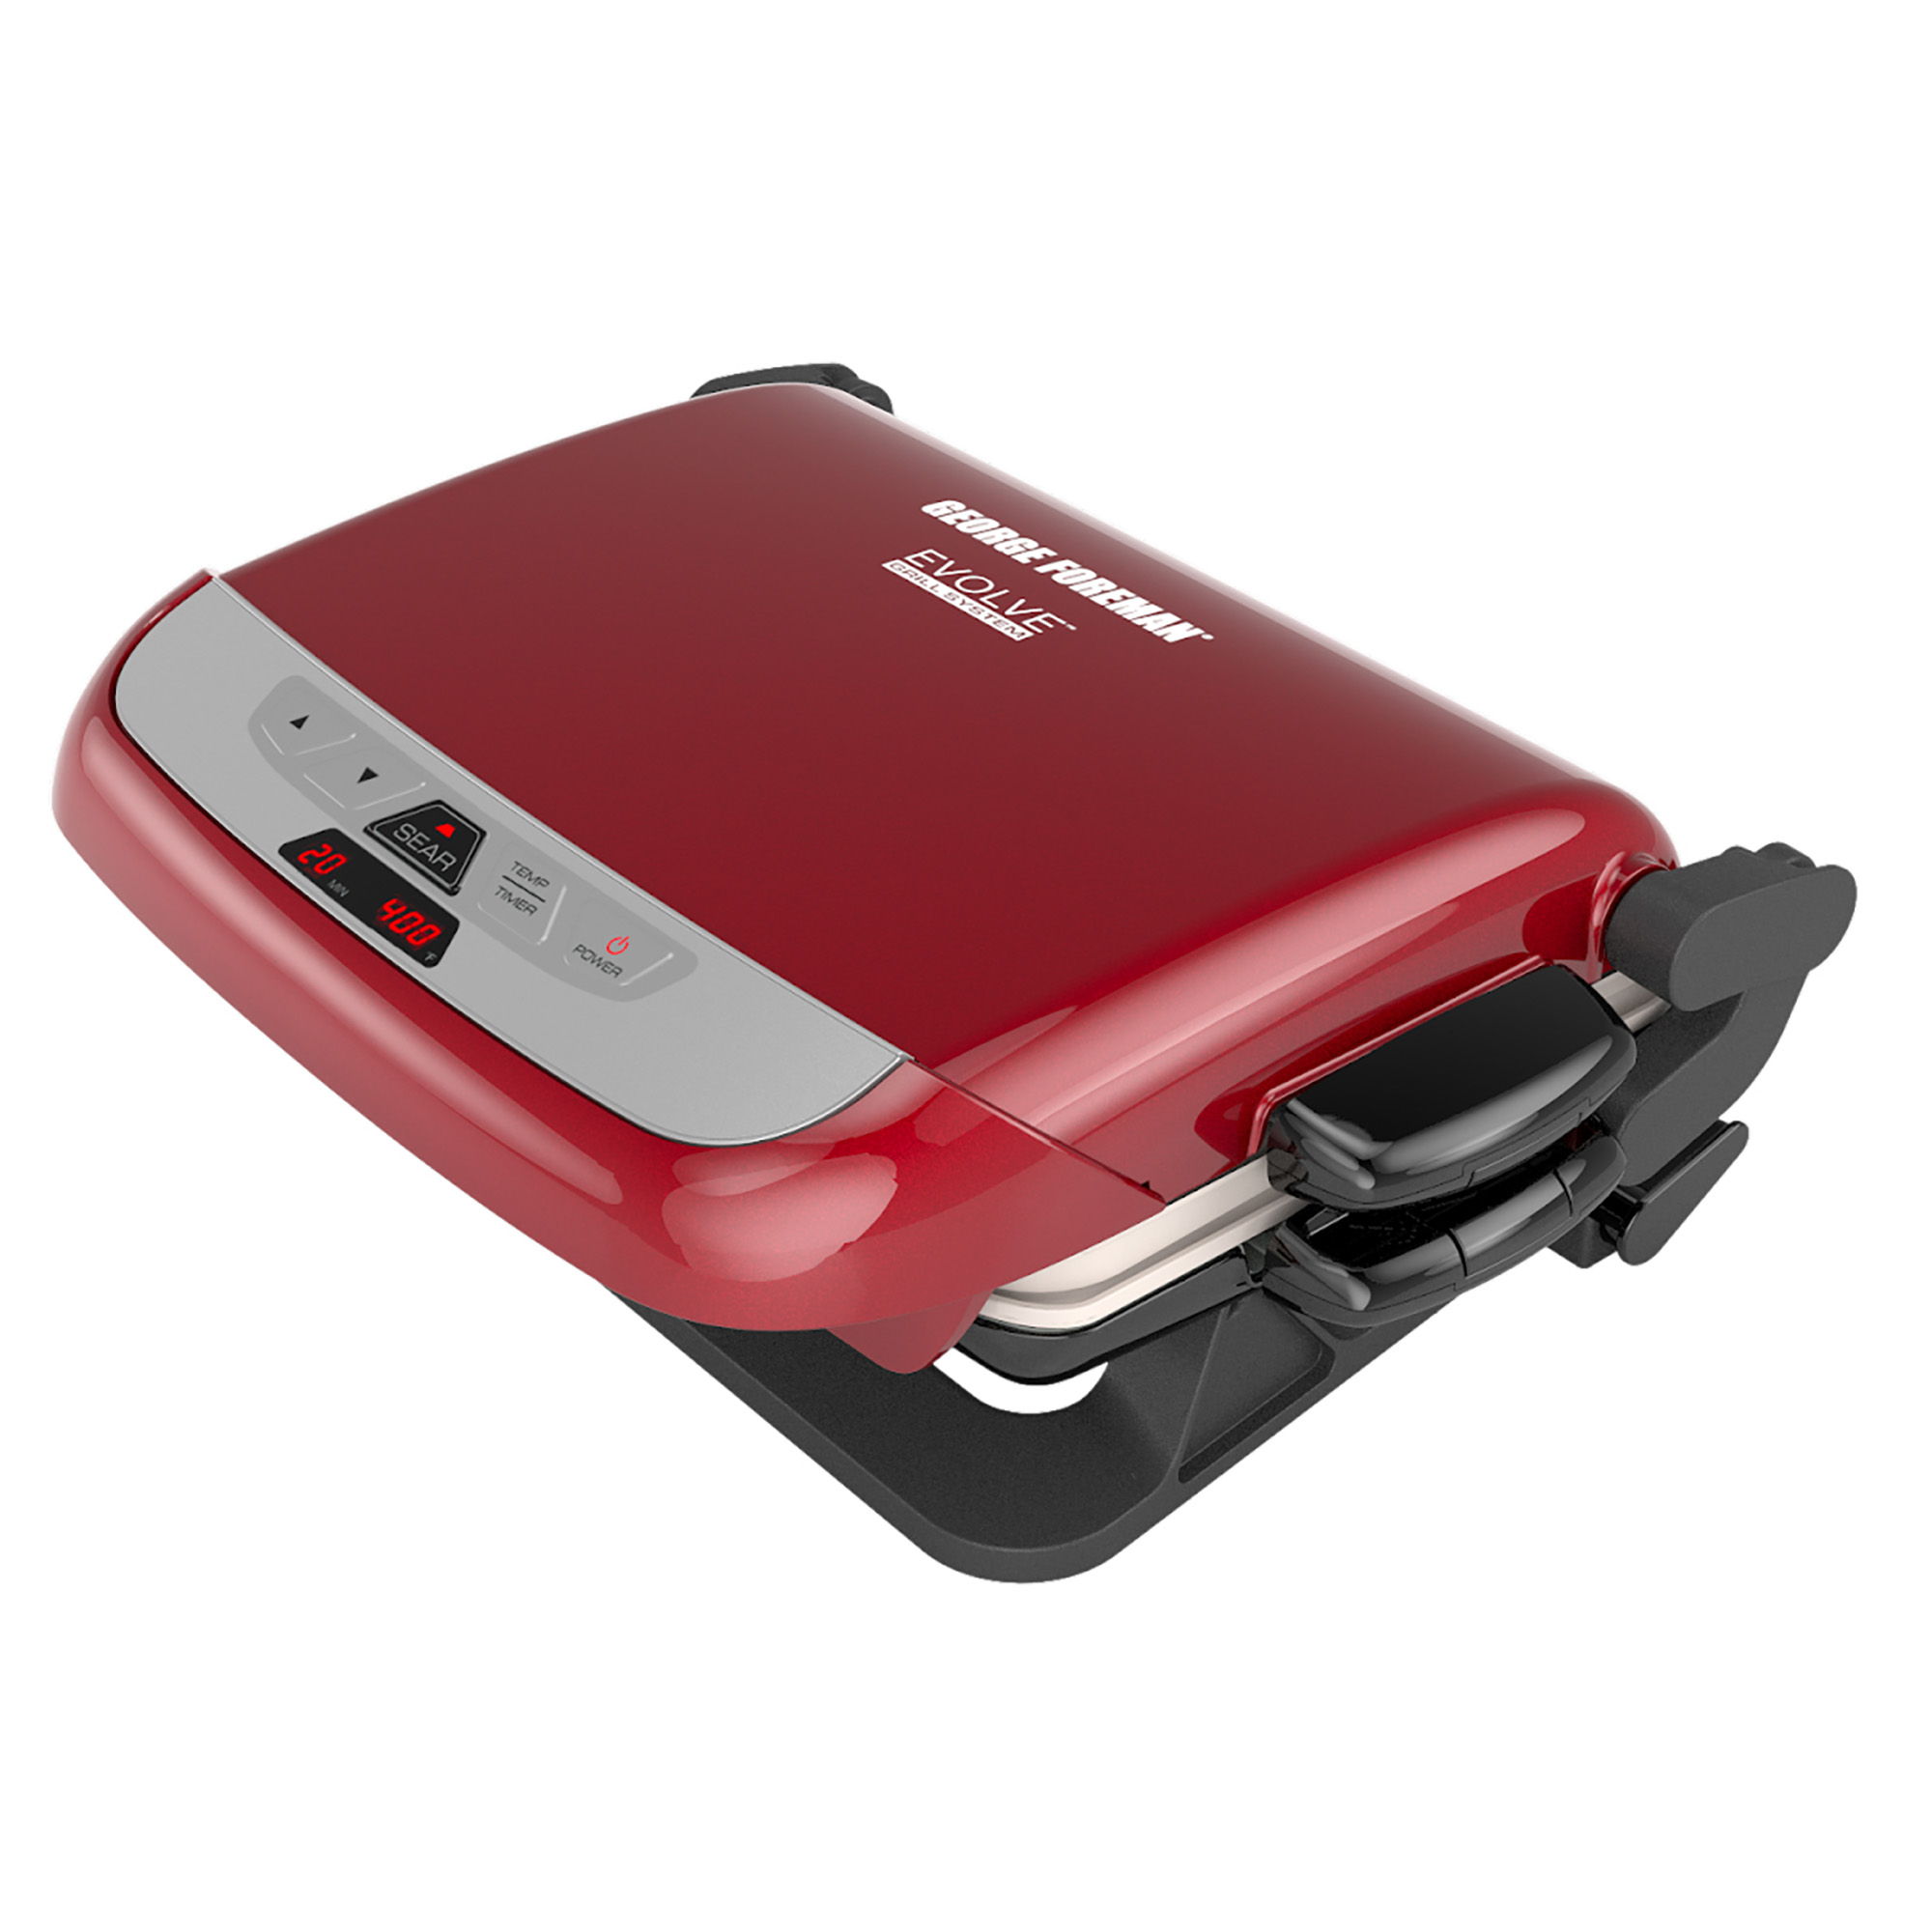 George Foreman Evolve 5-Serving Multi-Plate Grill System, Electric Indoor Grill with Ceramic Plates and Waffle Plates, Red, GRP4842RB